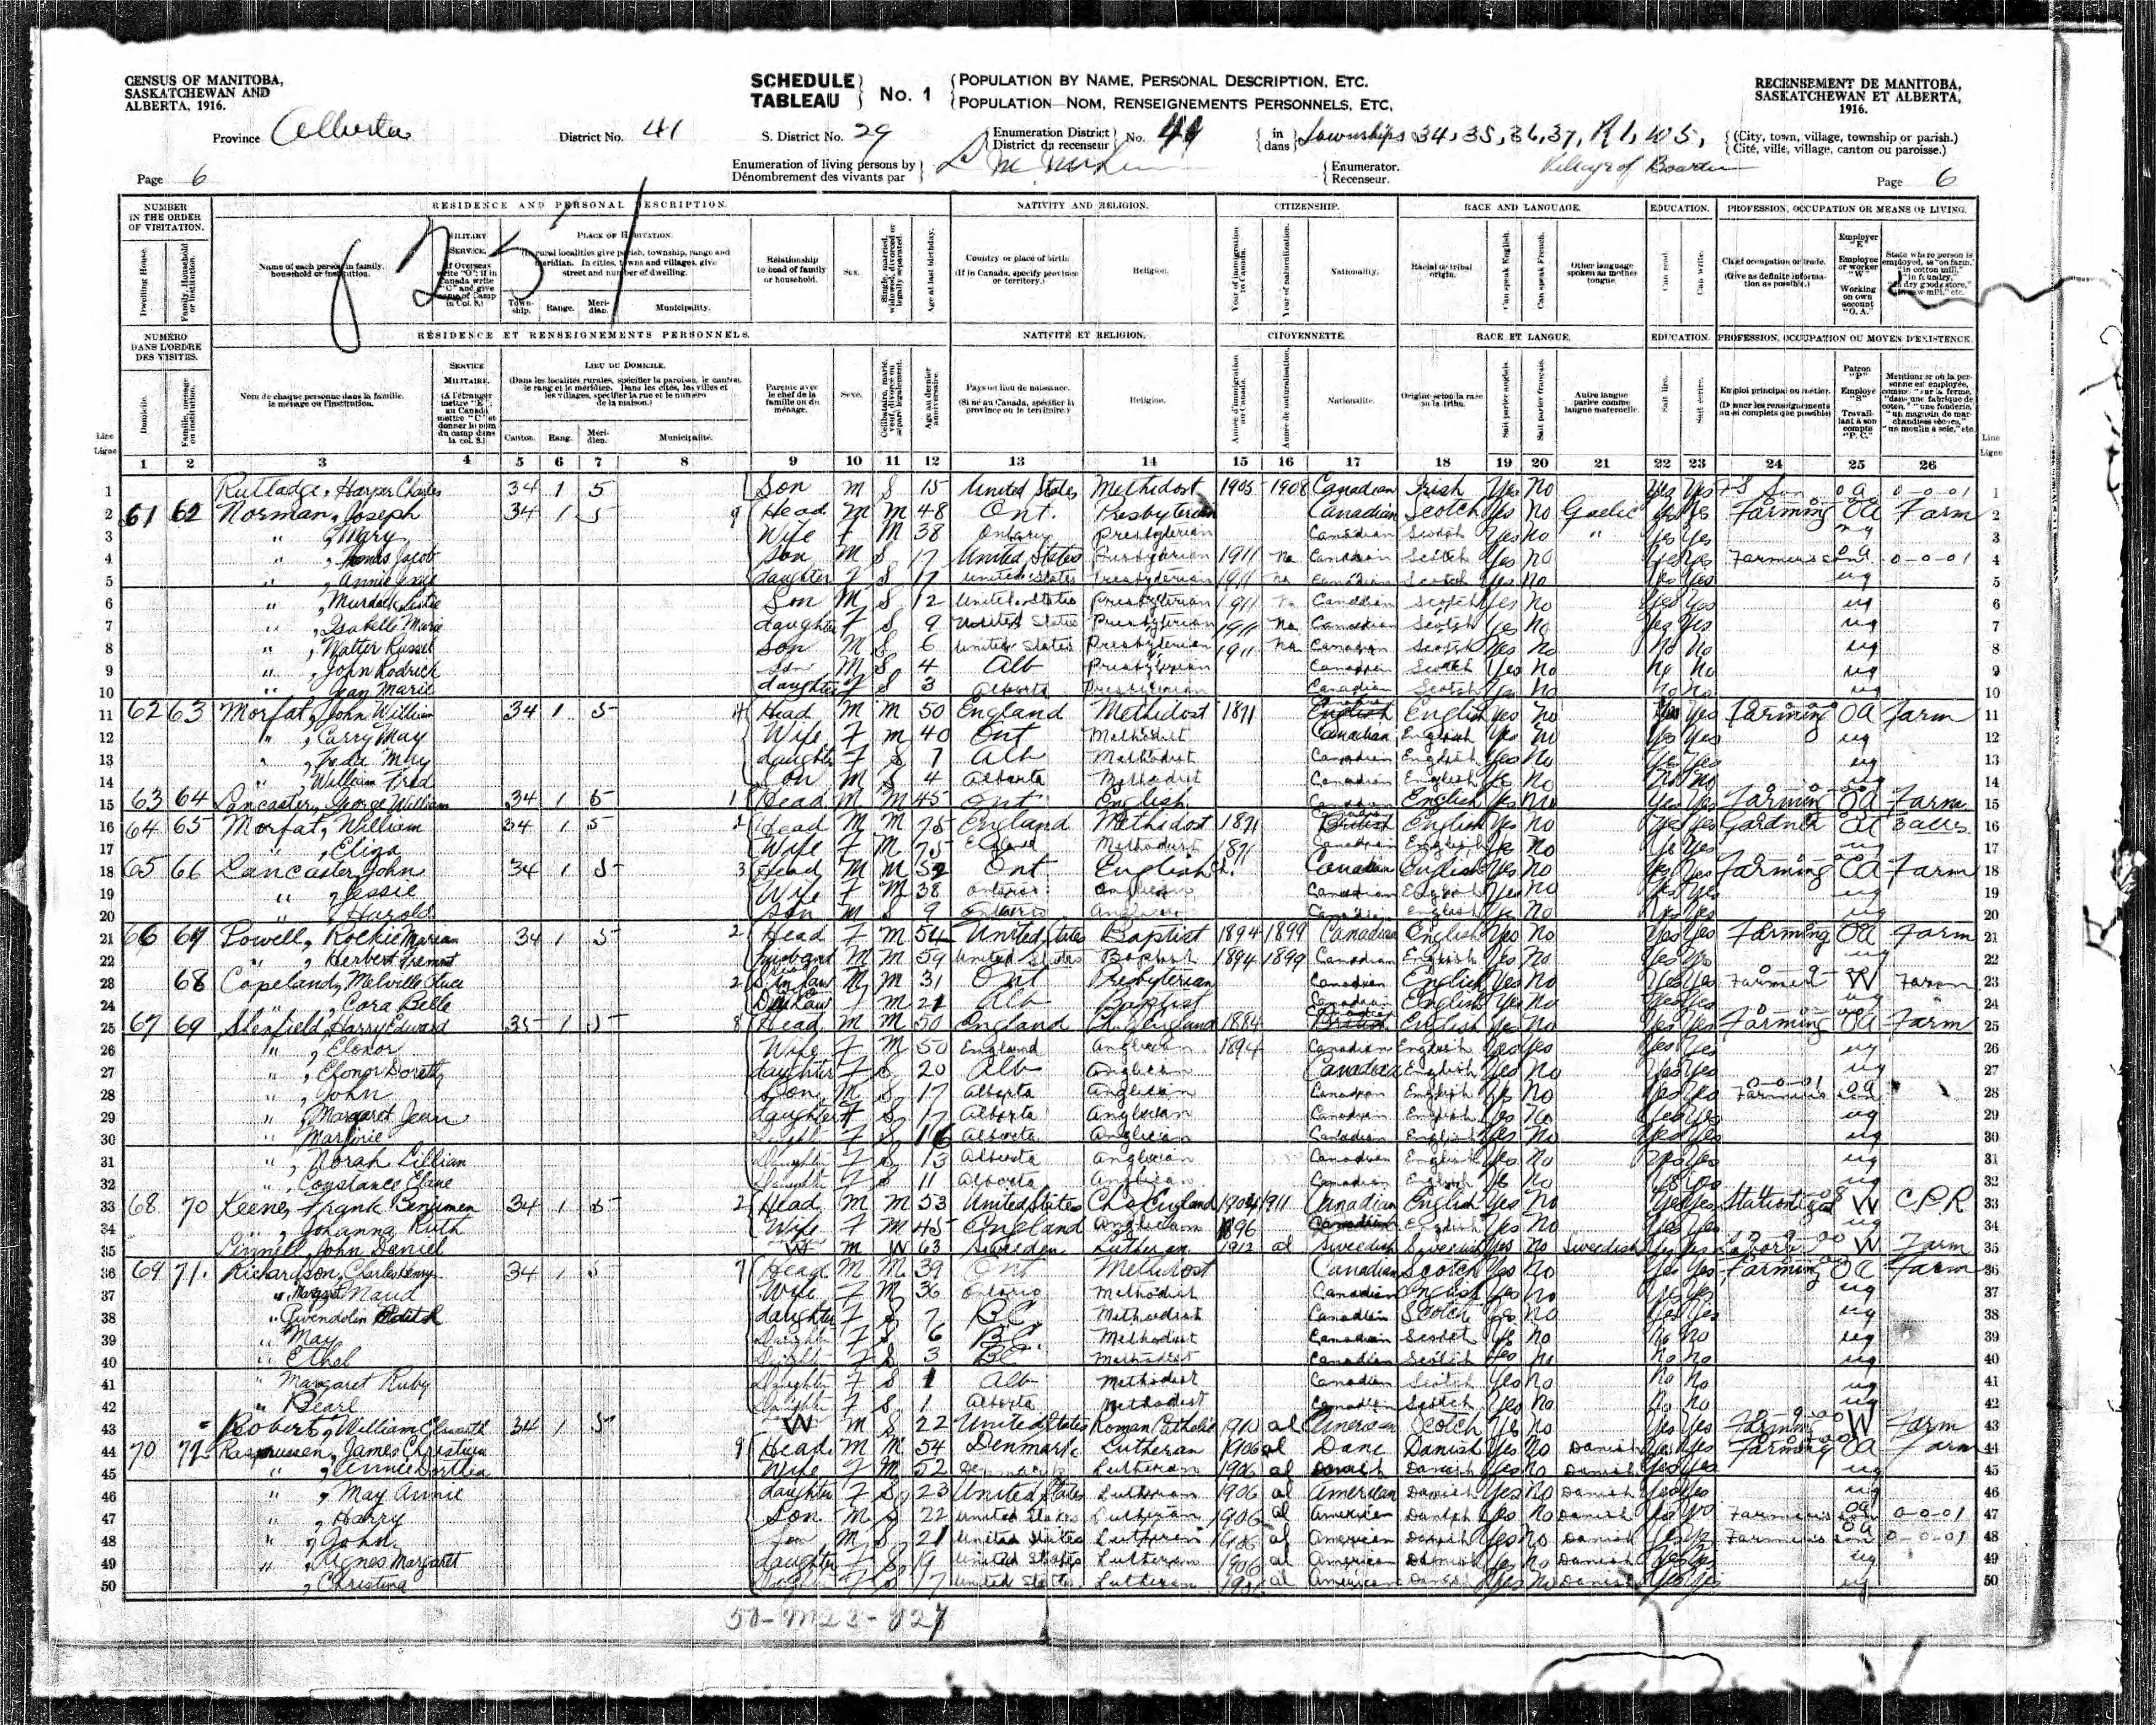 The Shenfield Family on the 1916 Census